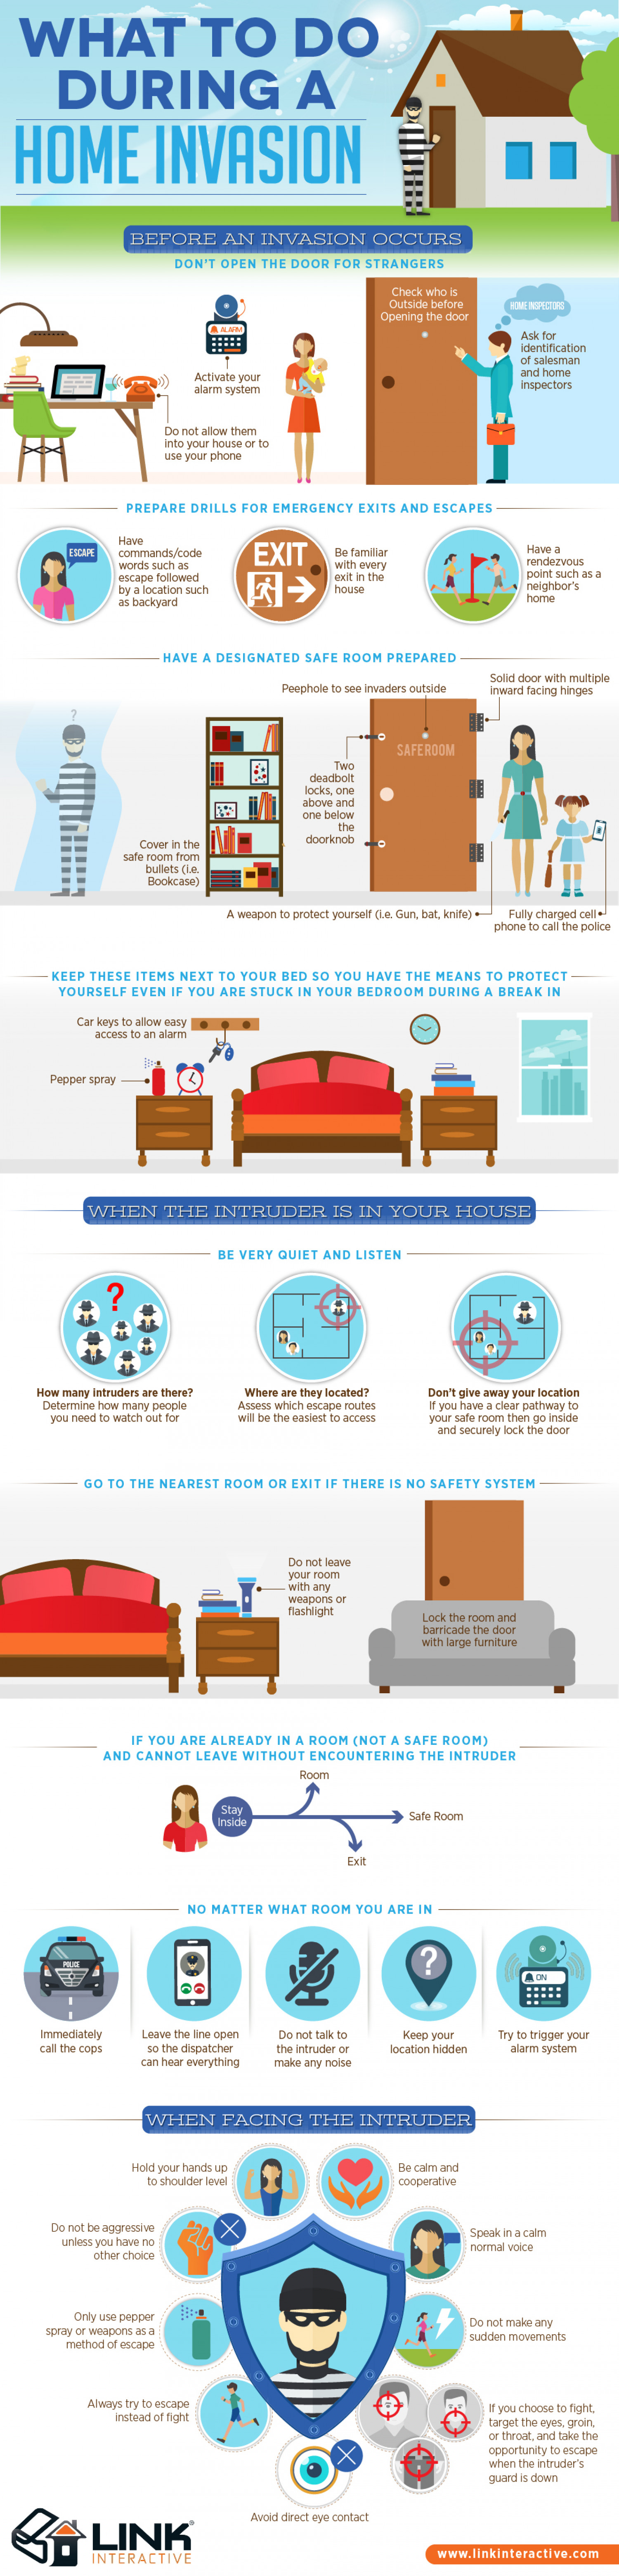 What to Do During a Home Invasion Infographic